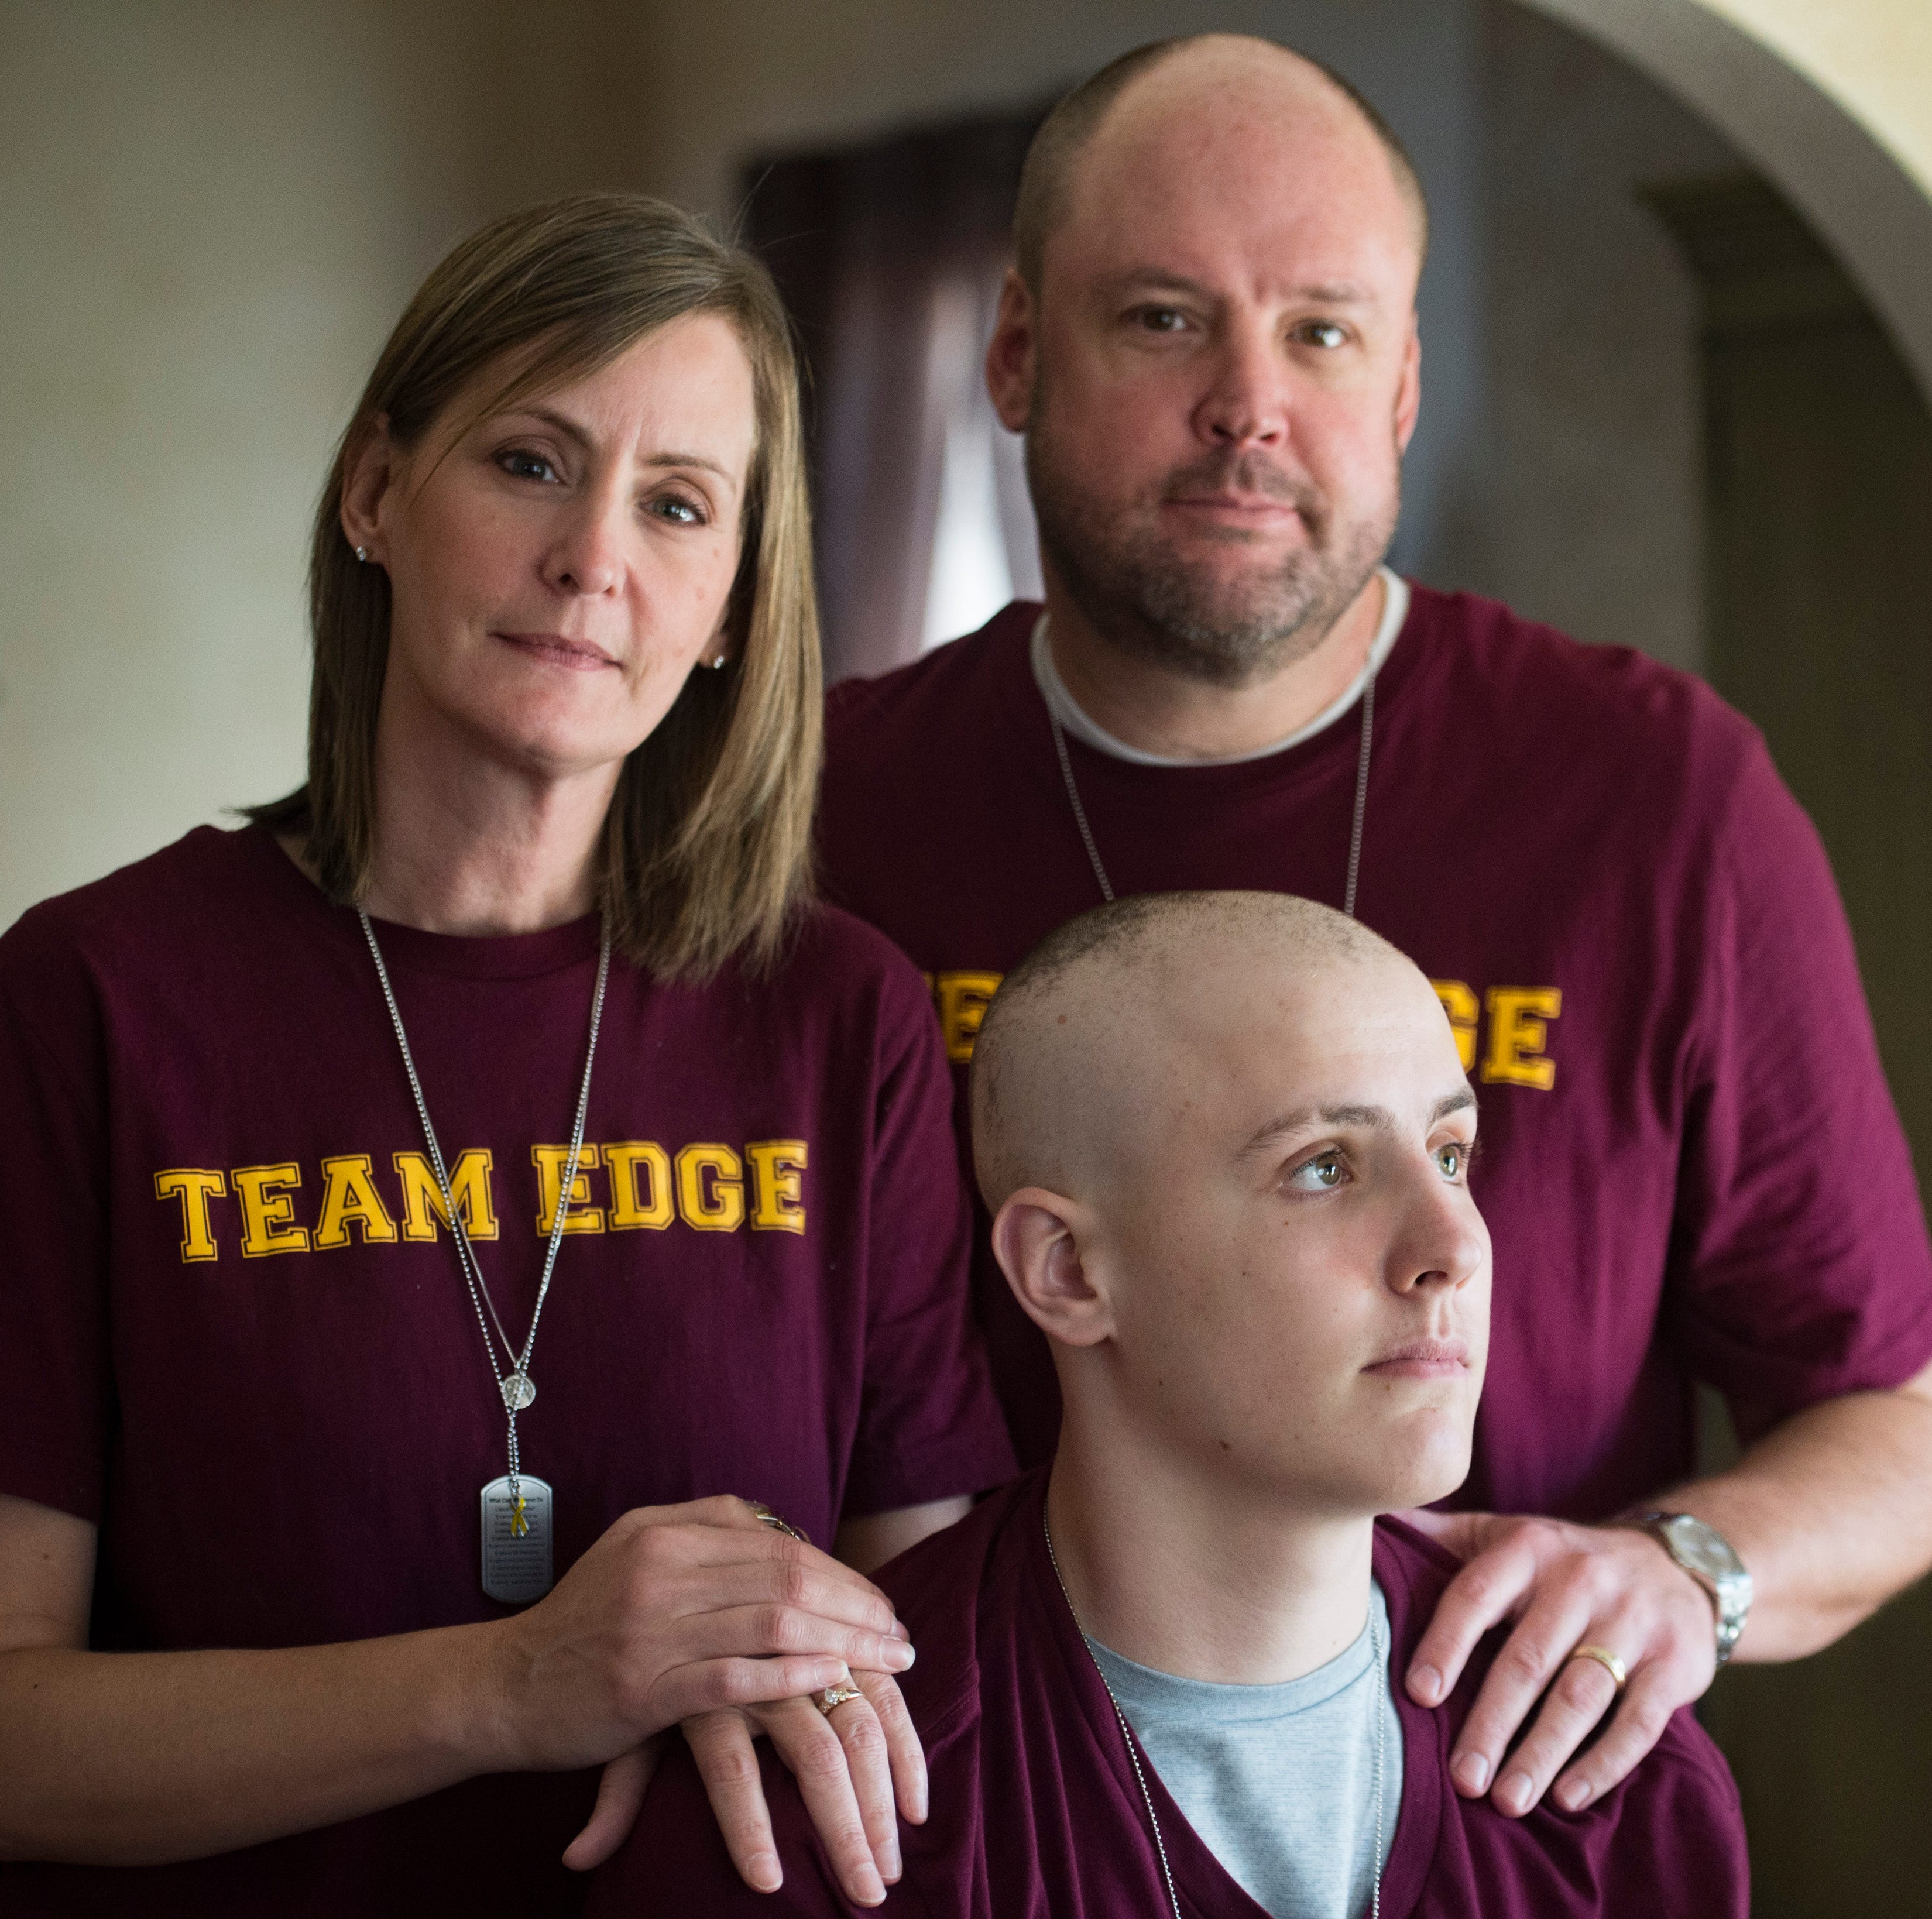 Rare cancer steals Fort Collins basketball player's dream of playing senior season